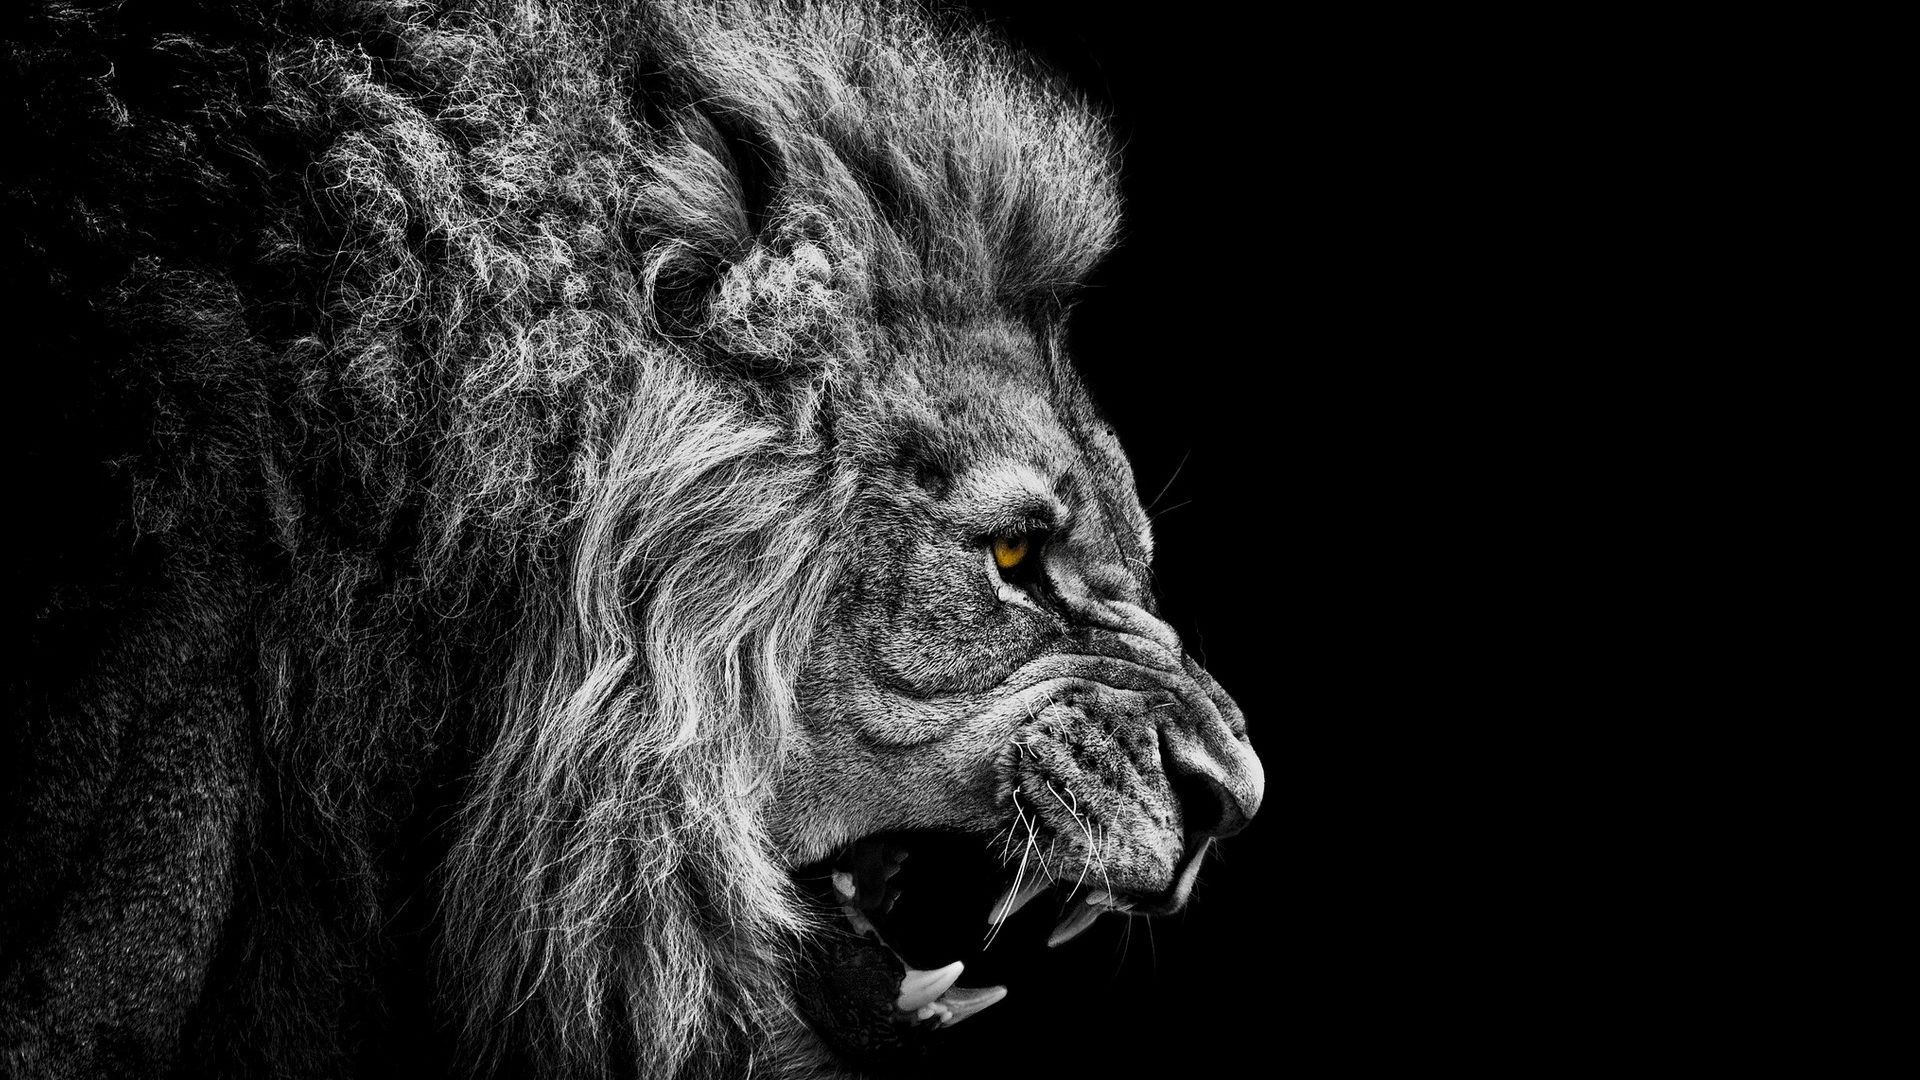 Lion Wallpaper Iphone HD